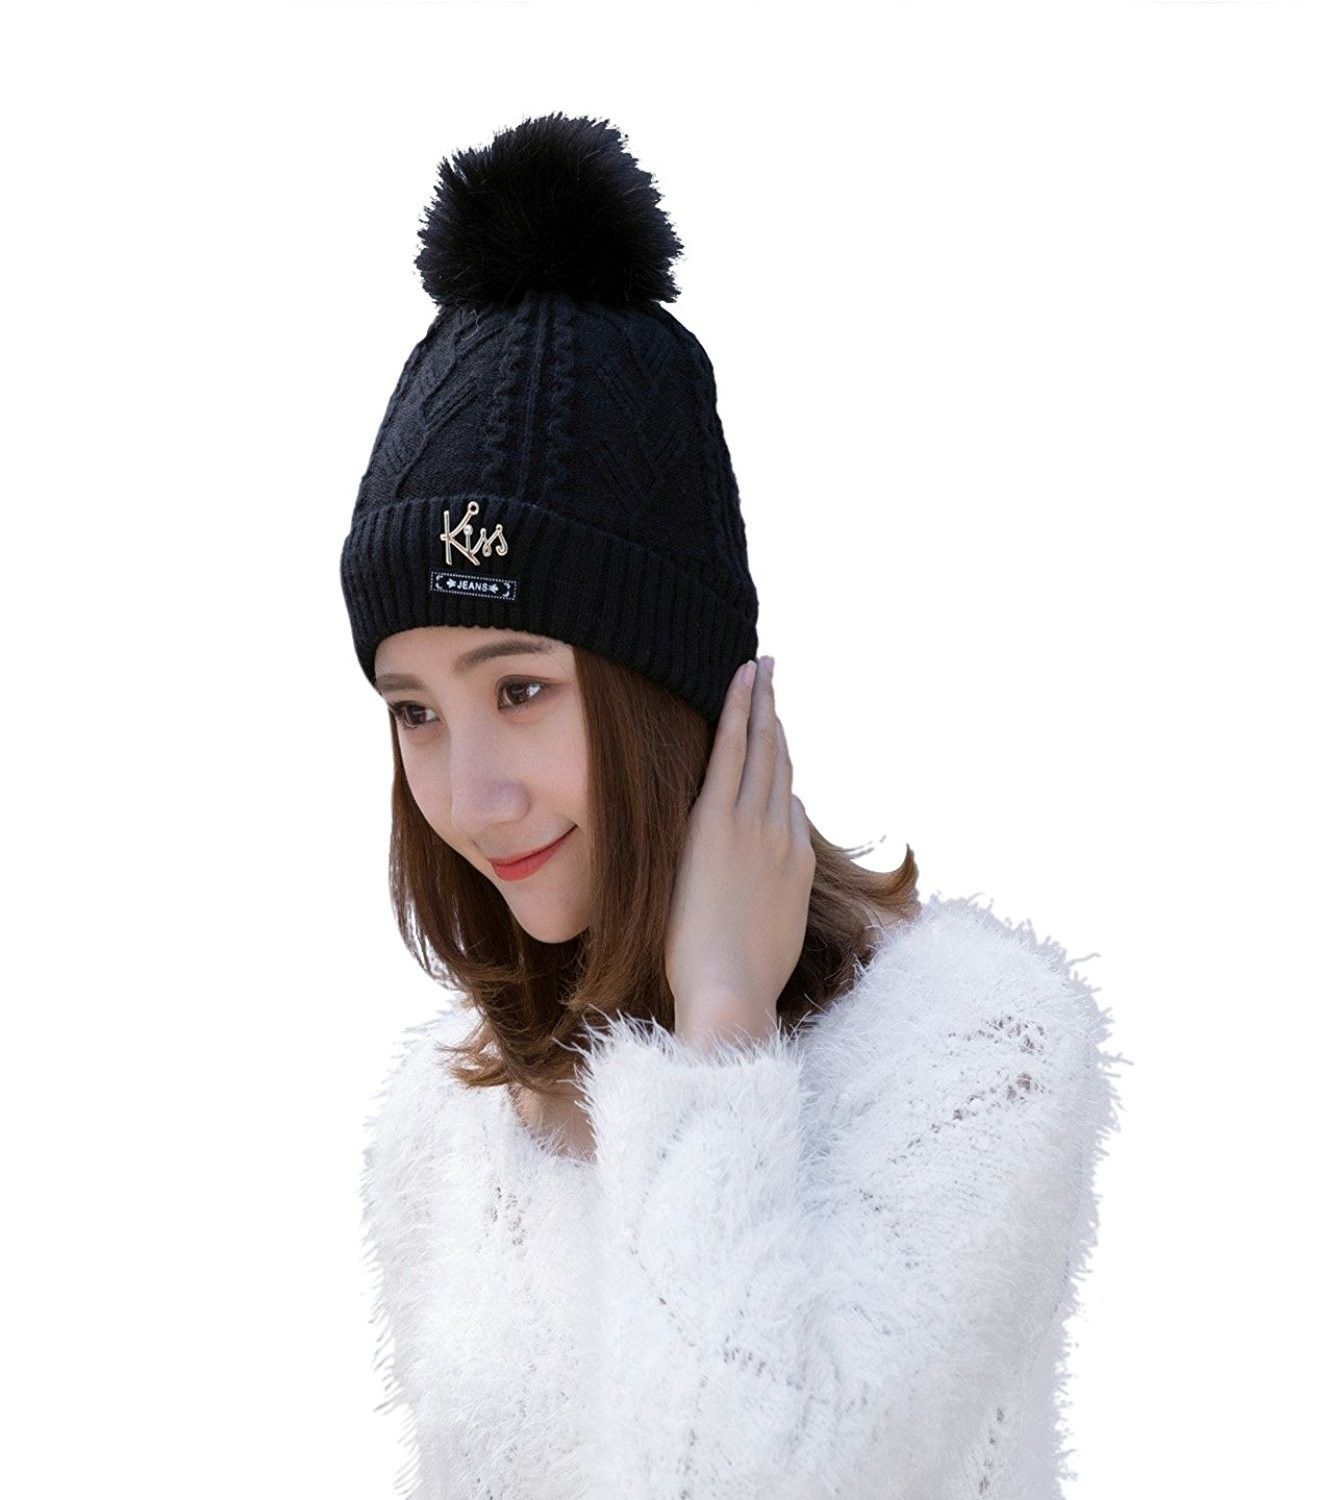 6dfc69ed0df Winter Beanie Hat Scarf Set Warm Knit Hat Thick Fleece Lined Knit Skul Cap  For Men Women - Black-pp - CW187QXN947 - Hats   Caps